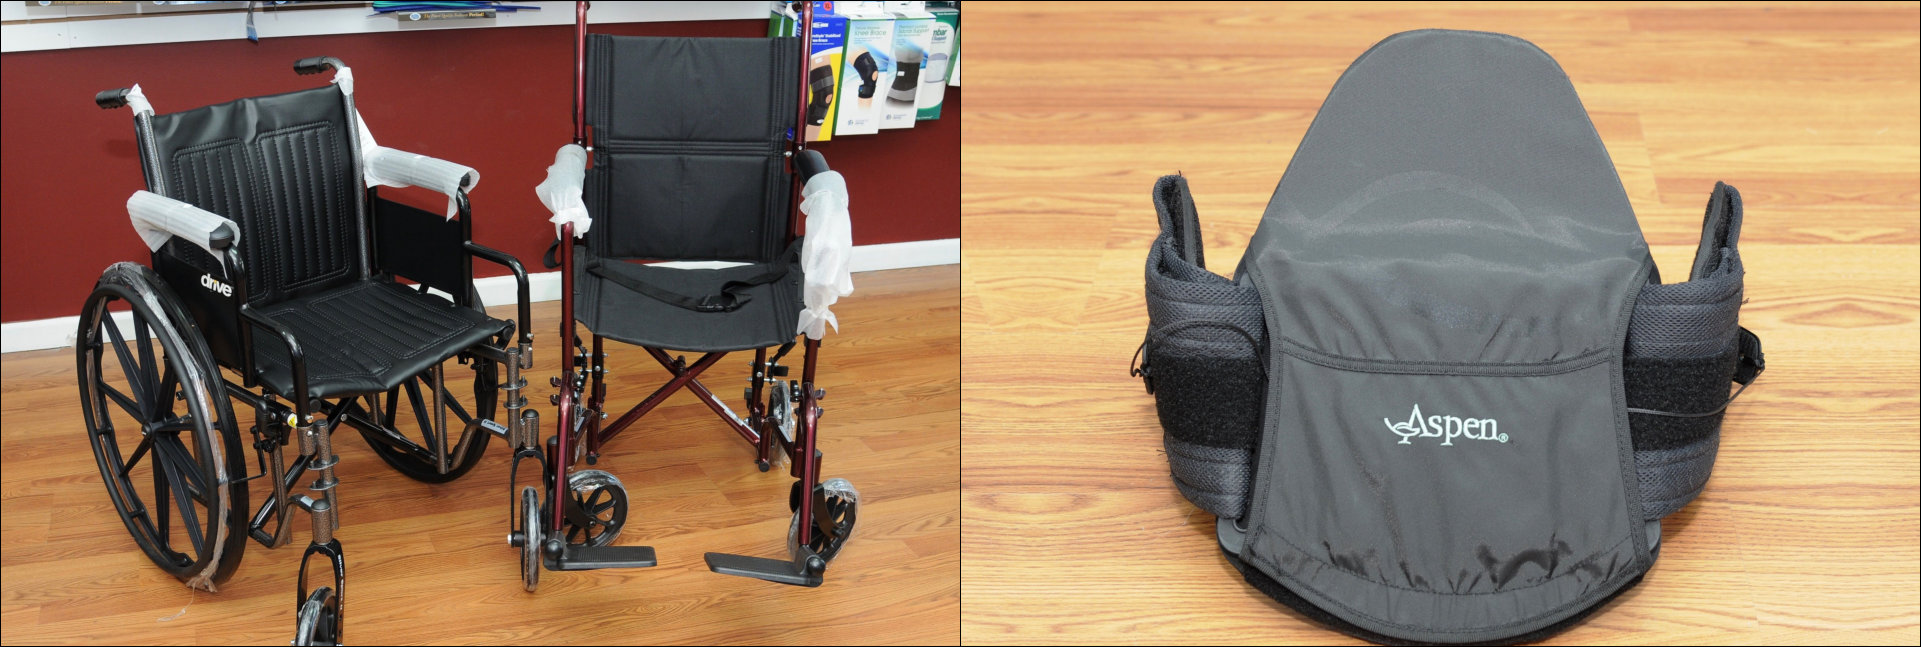 Wheelchair and Medical Product